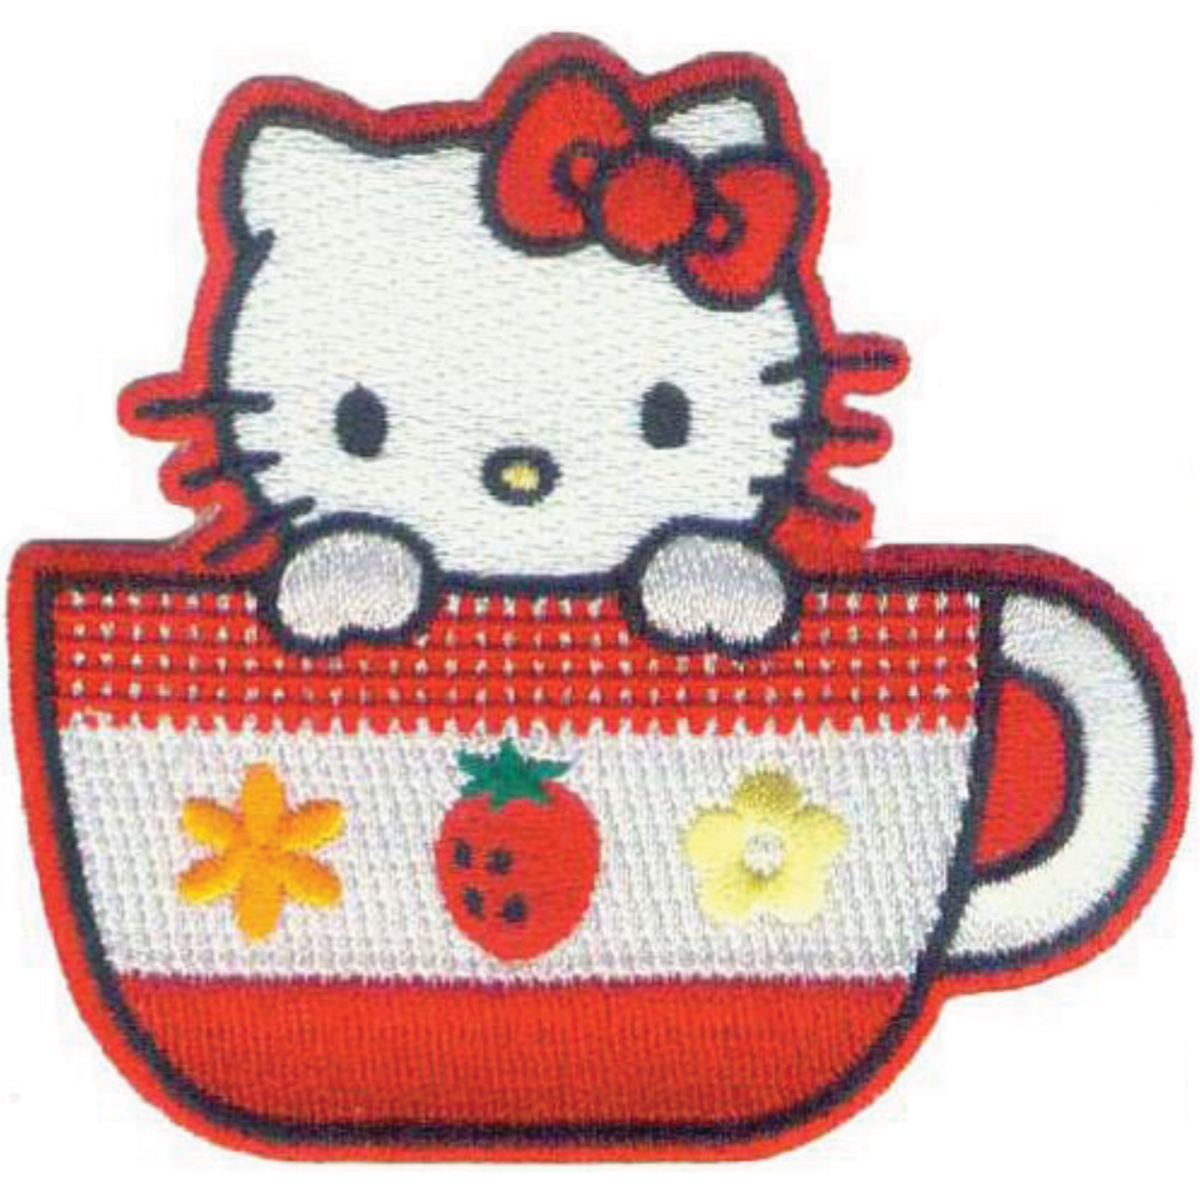 C, Visionary Hello Kitty Patches Tea Cup